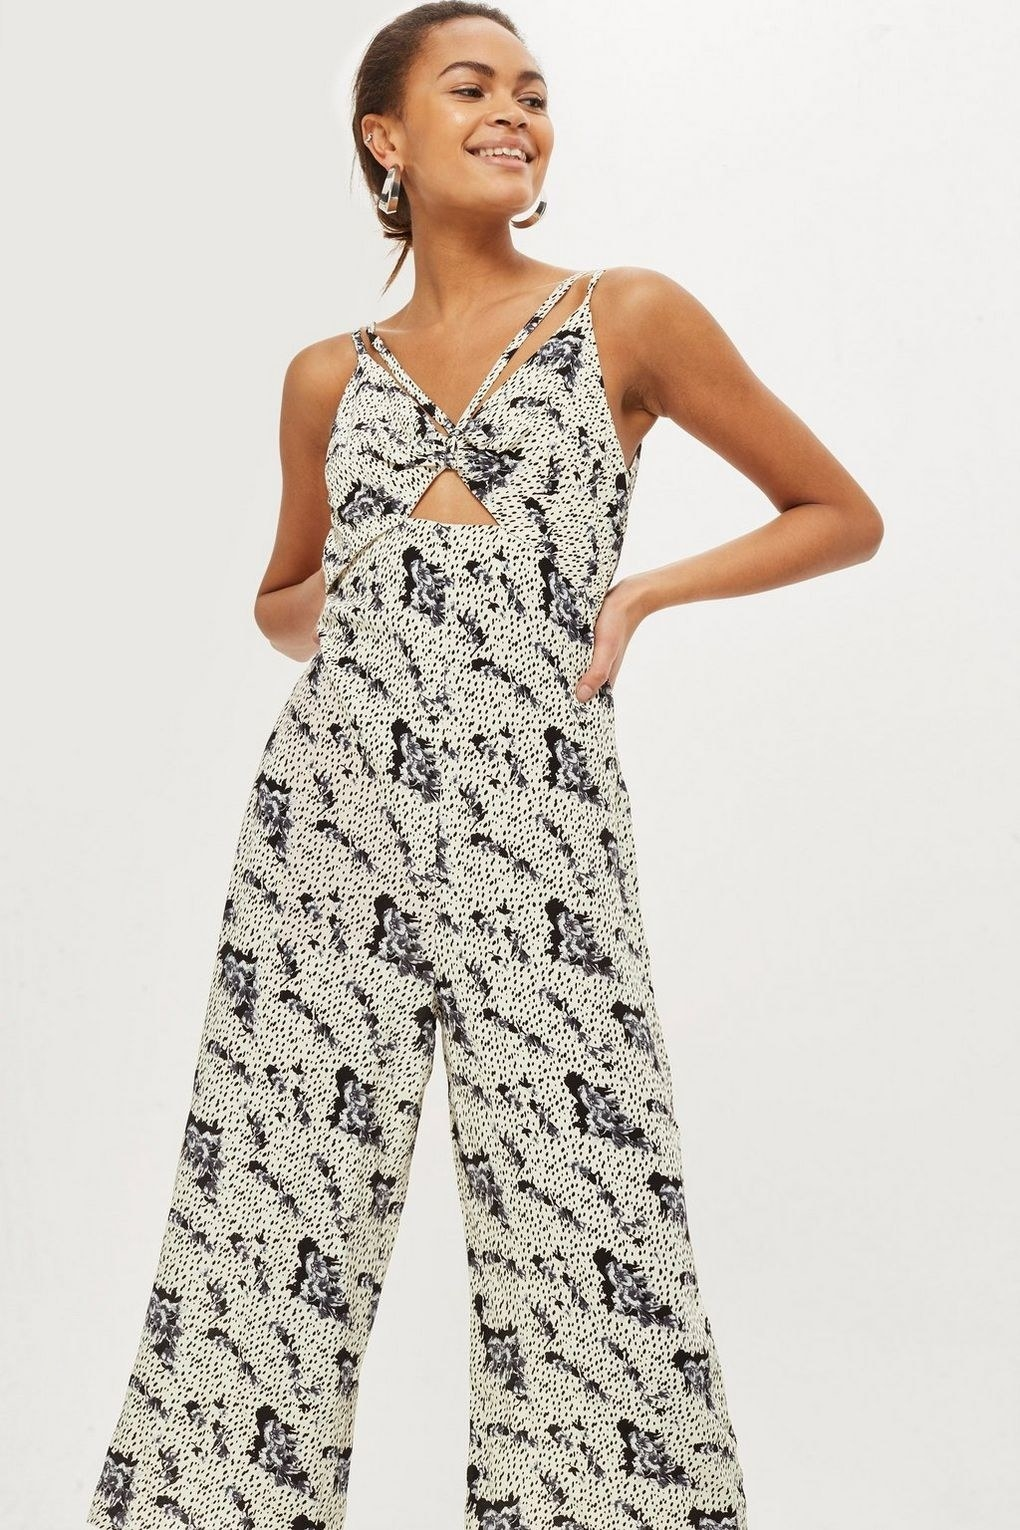 5f847f2e9791 17. Topshop rocks the style world with its selection of tall dresses